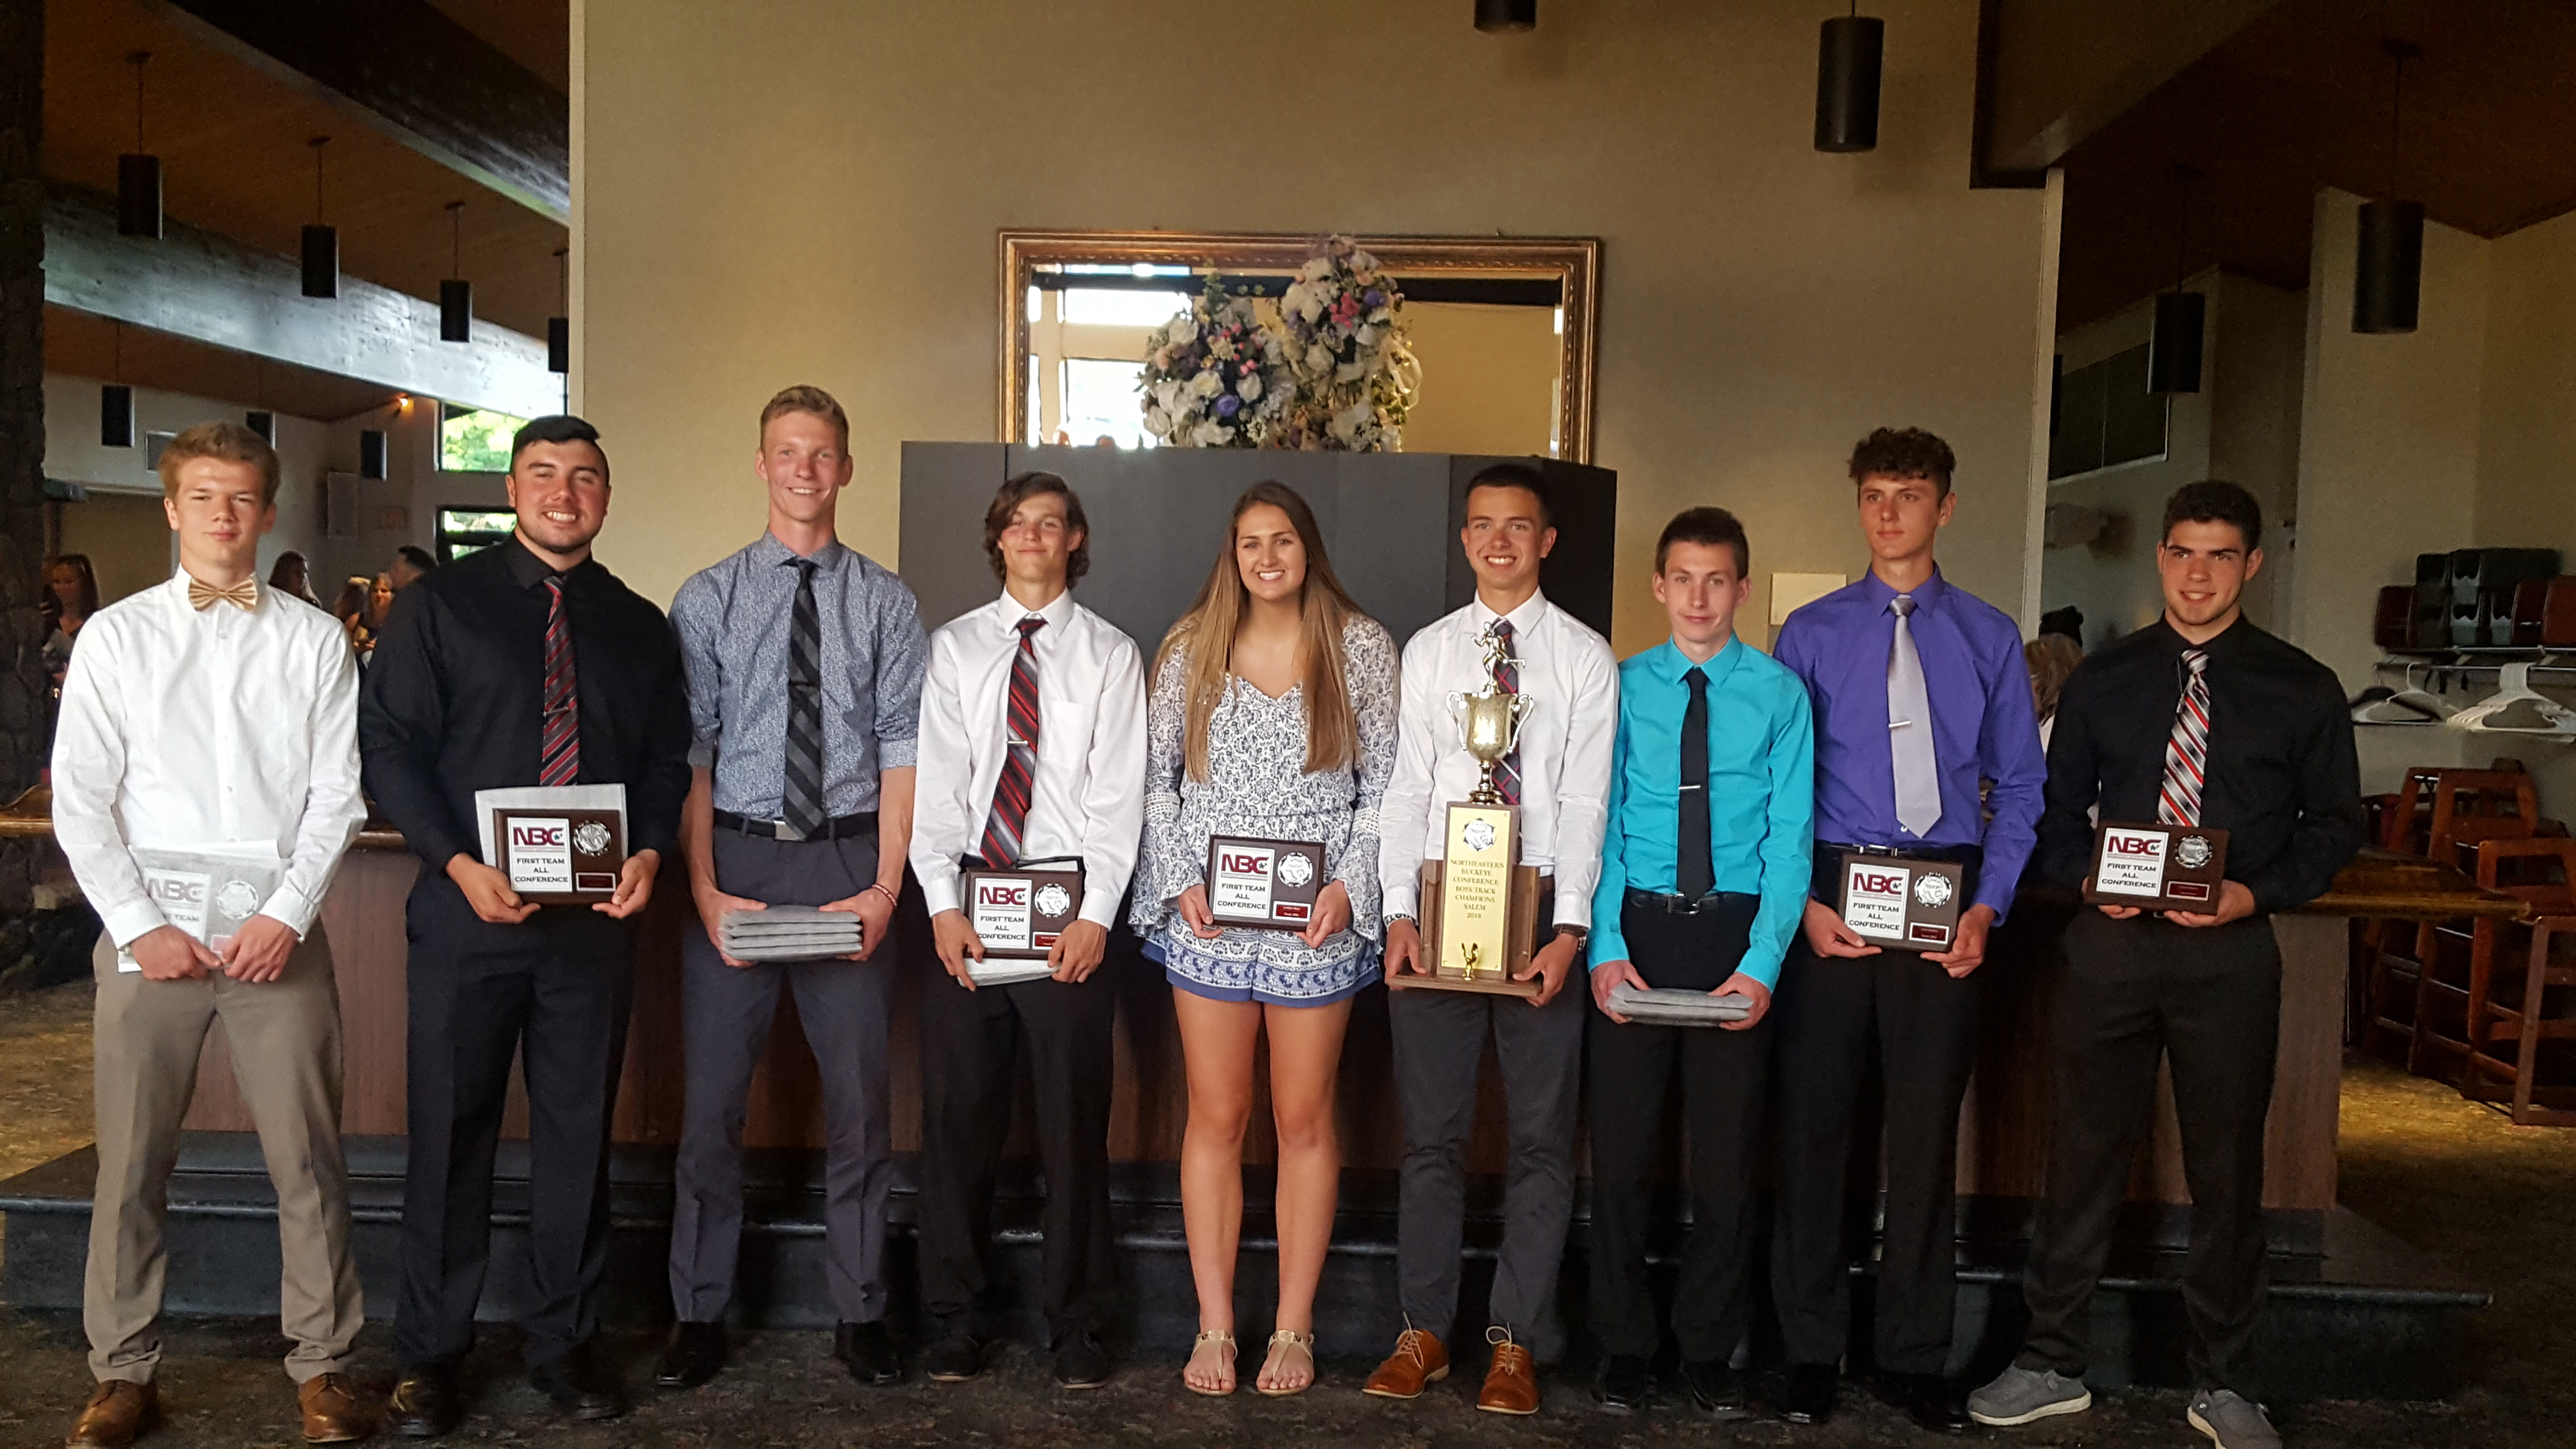 Congrats to our boys and girls earning All-NBC Spring Honors